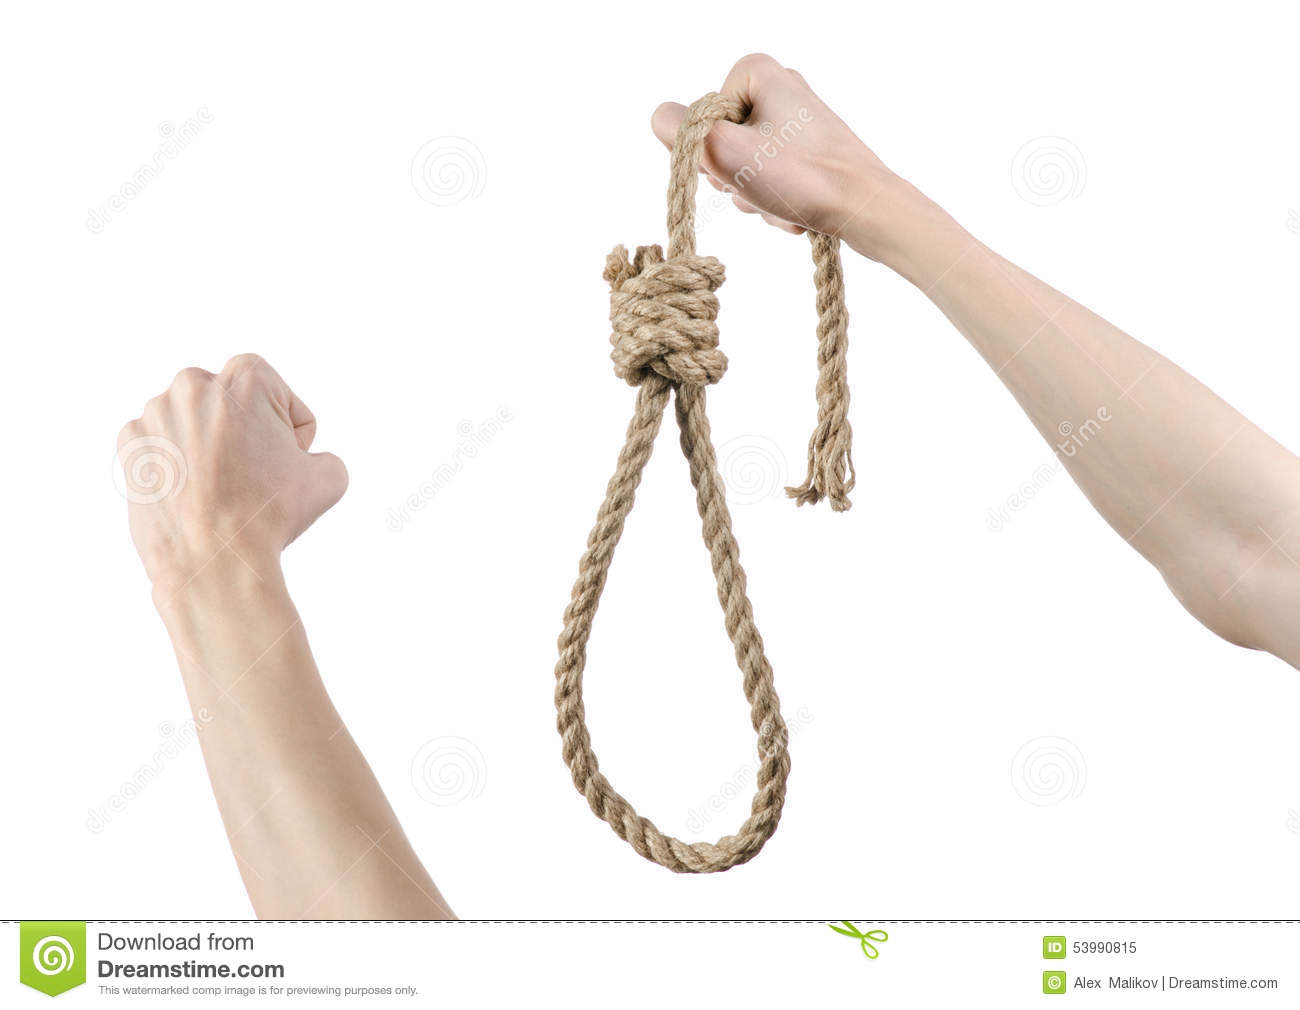 3d cgi noose hanging sex photo